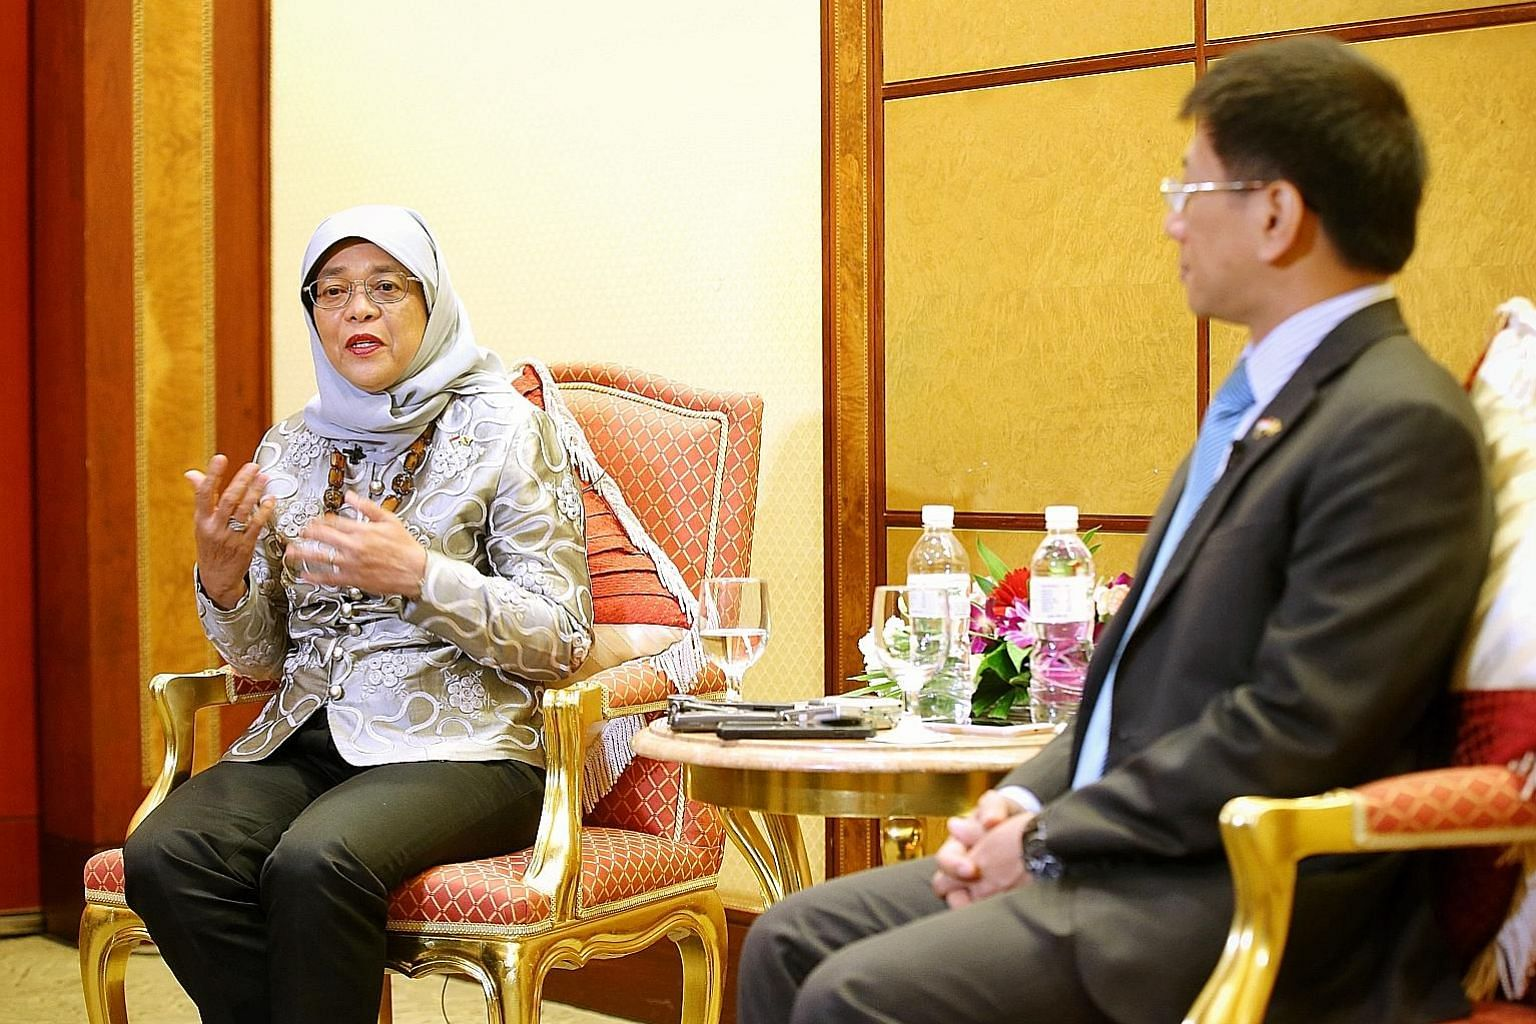 President Halimah Yacob with Singapore's High Commissioner to Brunei, Mr Lim Hong Huai, as she spoke to Singapore reporters at the end of her four-day state visit to Brunei yesterday. On Sunday, Mr Lim hosted a dinner reception for Singaporeans in th